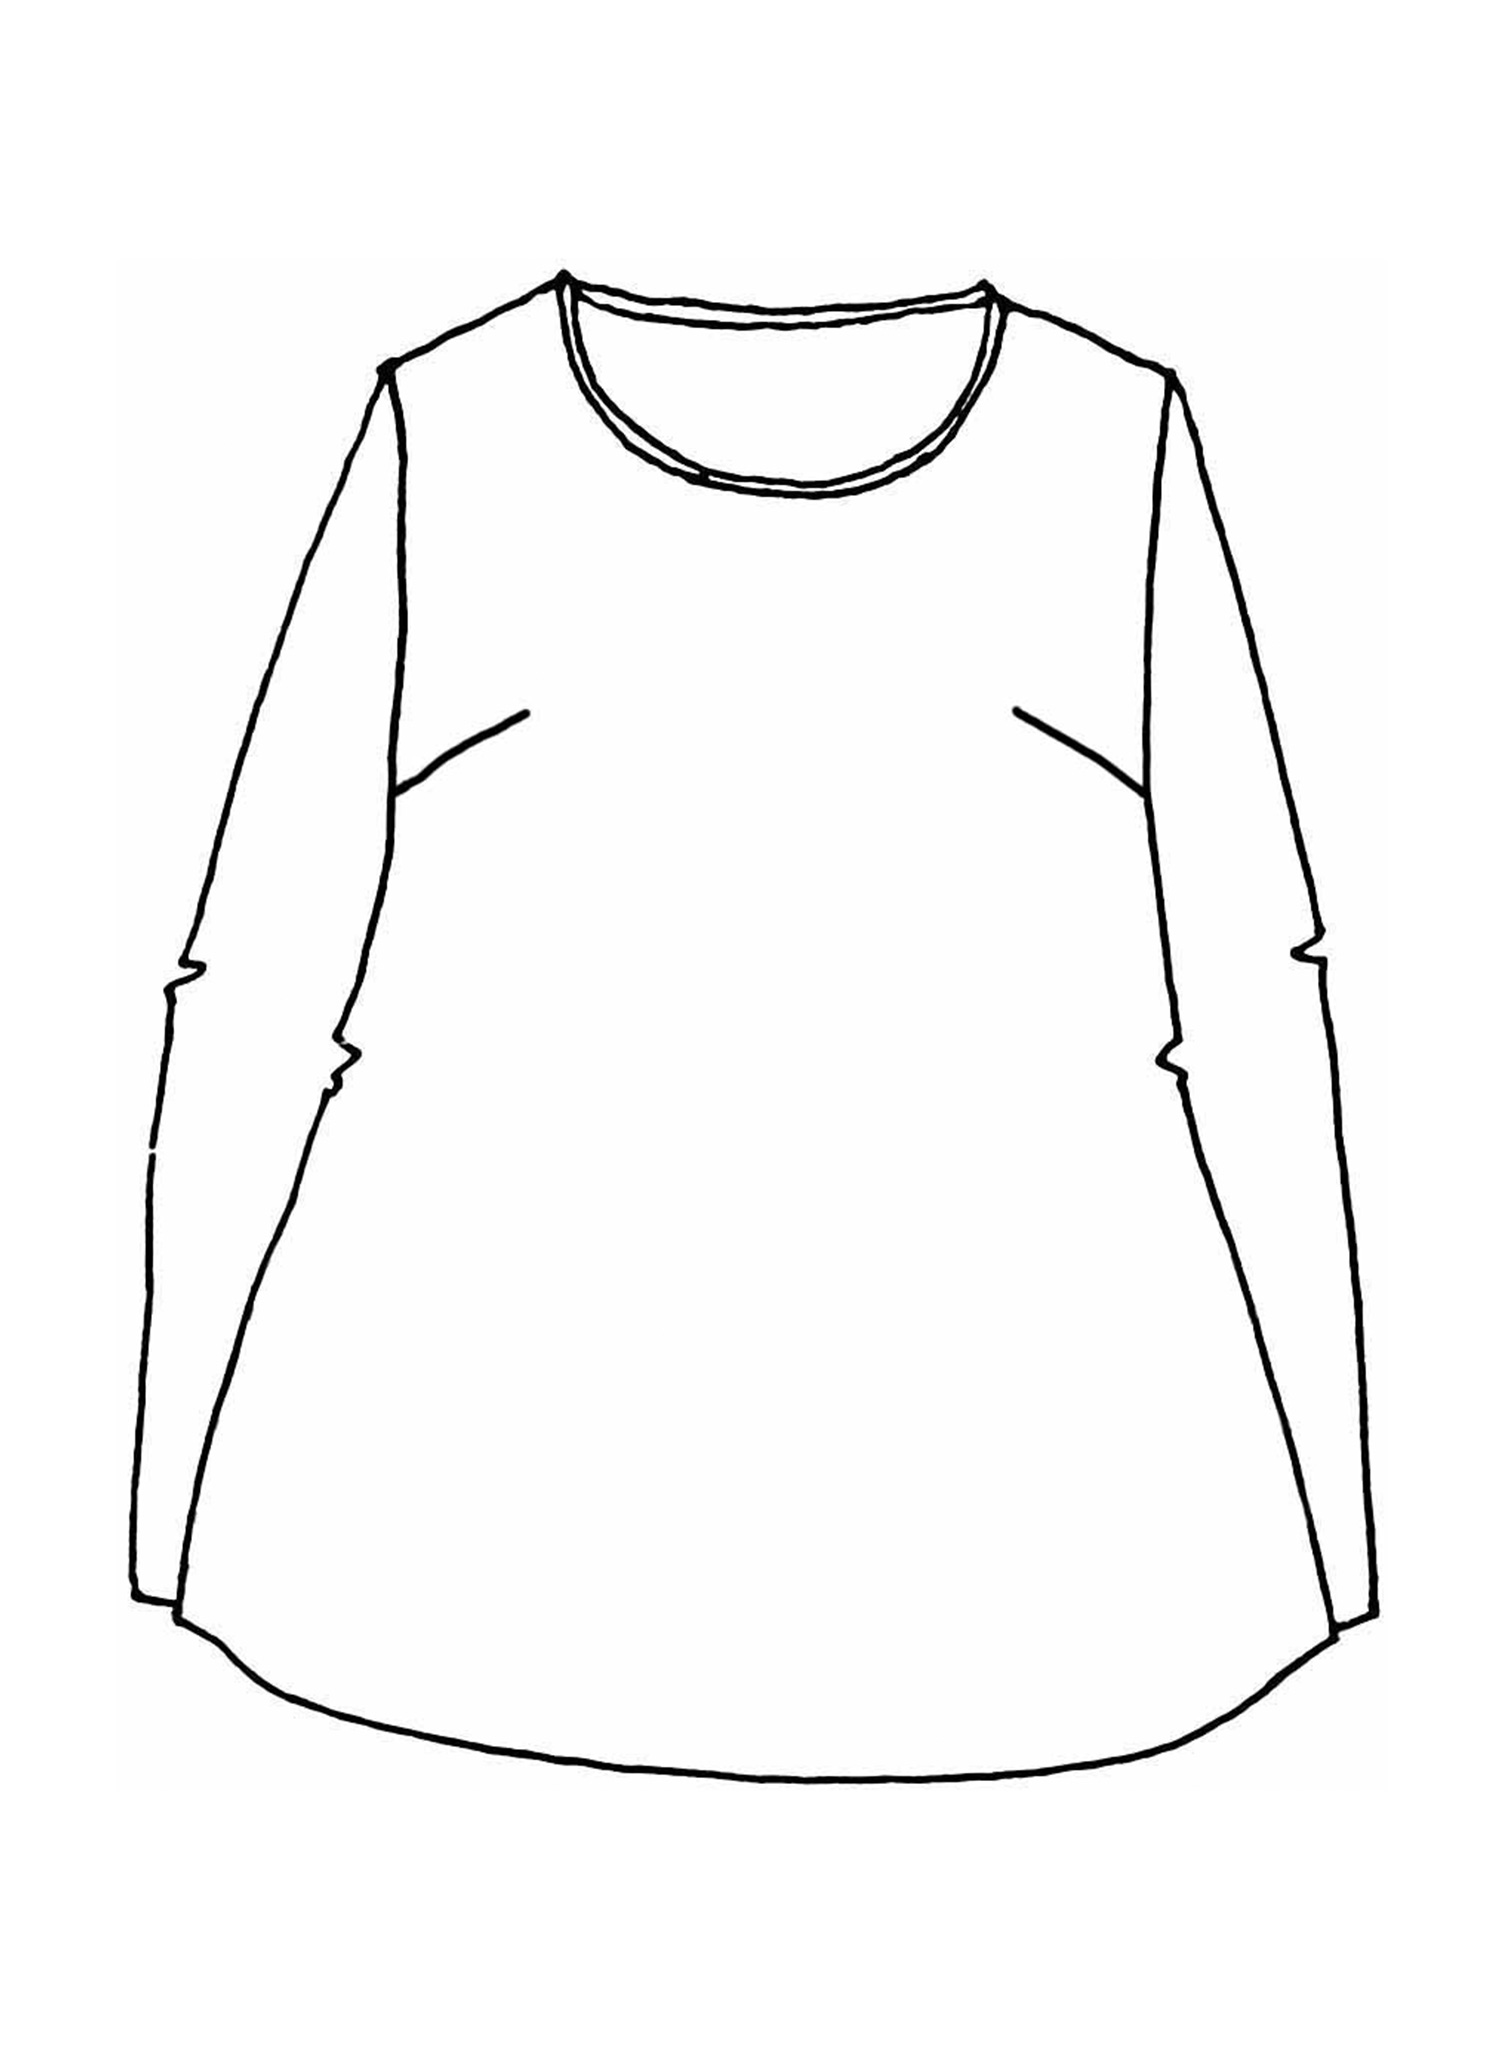 Balance Pullover sketch image